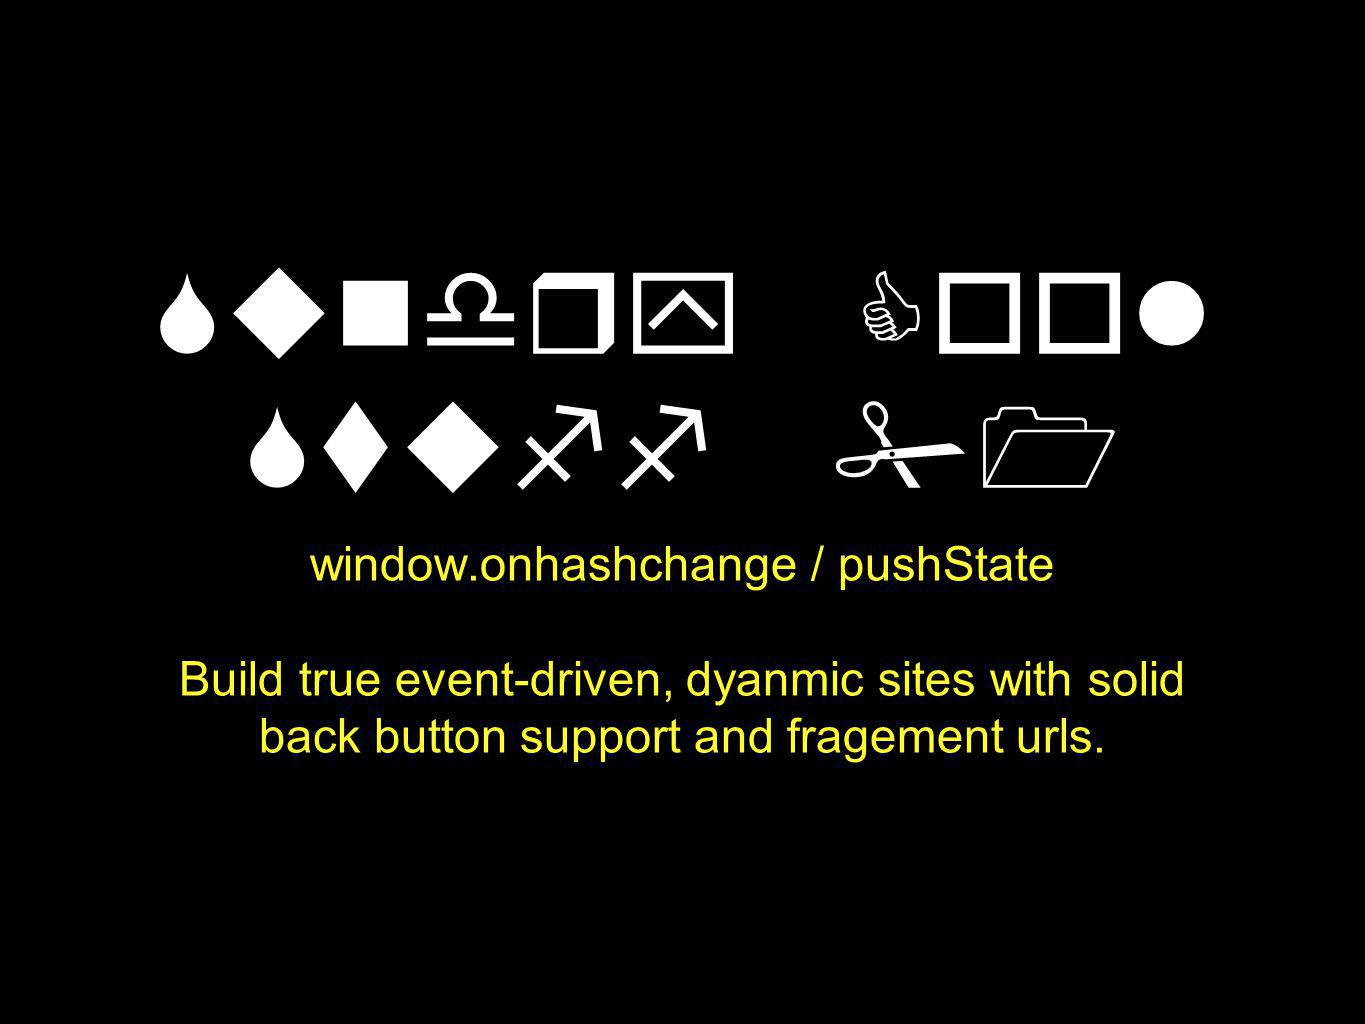 Sundry Cool Stuff #1 window.onhashchange / pushState Build true event-driven, dyanmic sites with solid back button support and fragement urls.